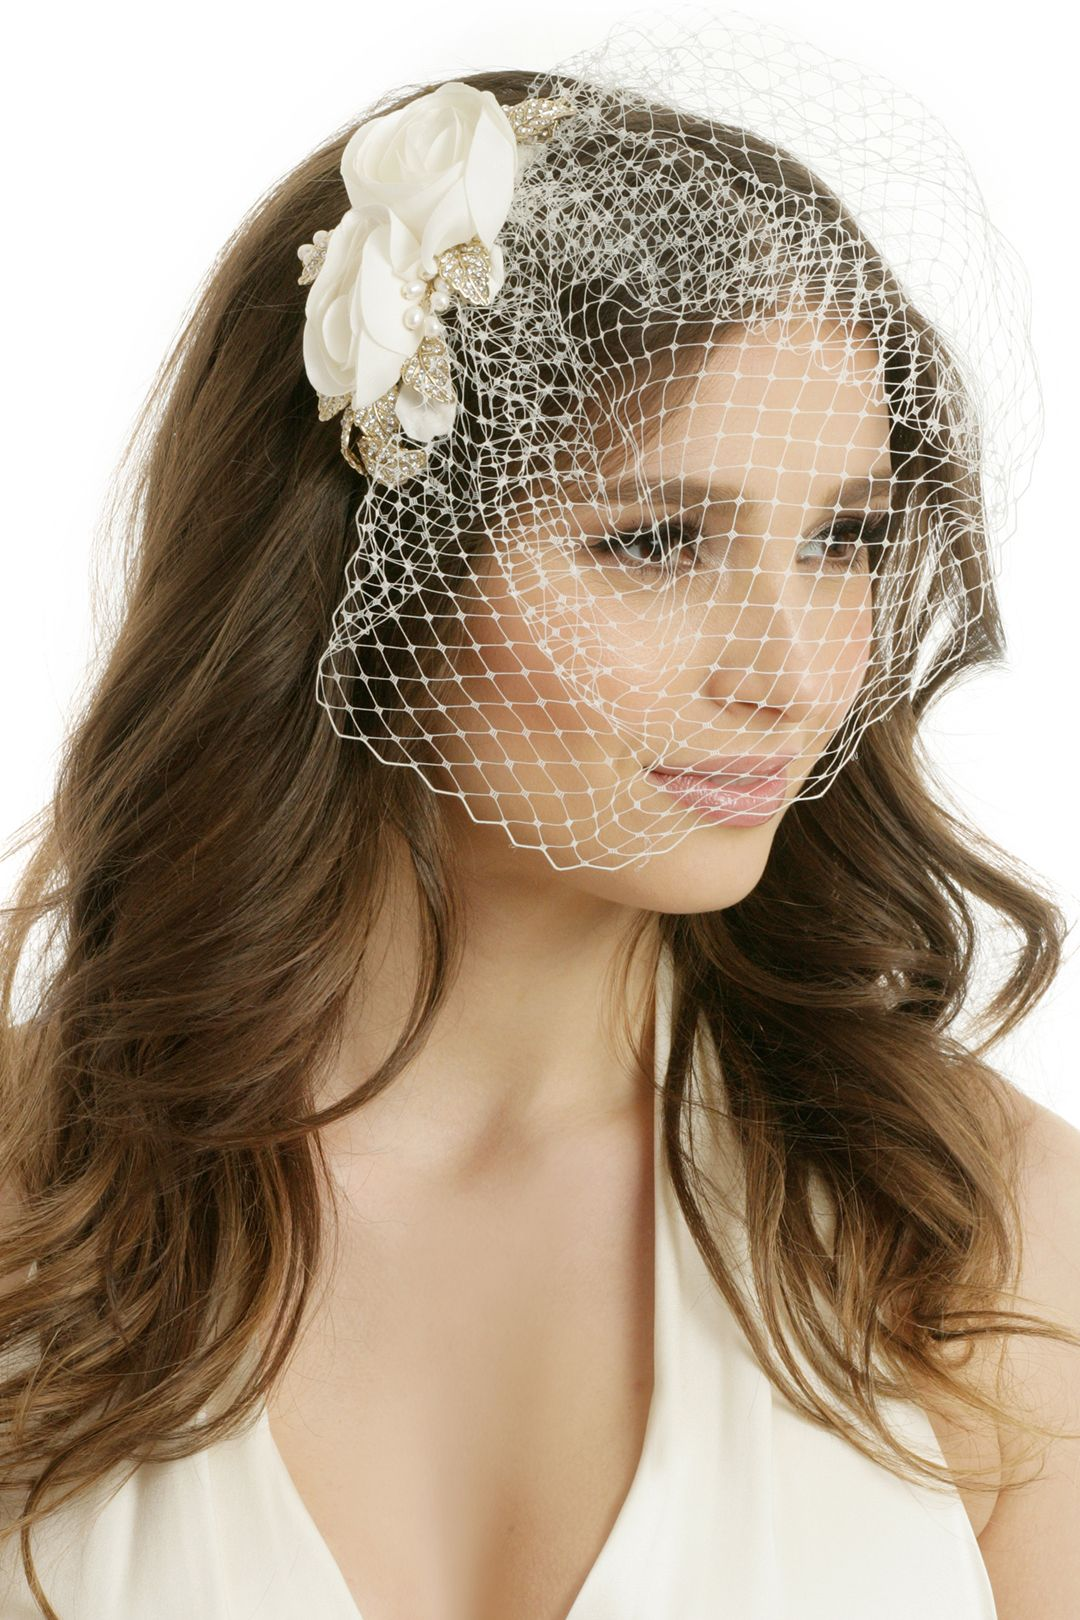 rtr bridal accessories delicate and demure veil $15